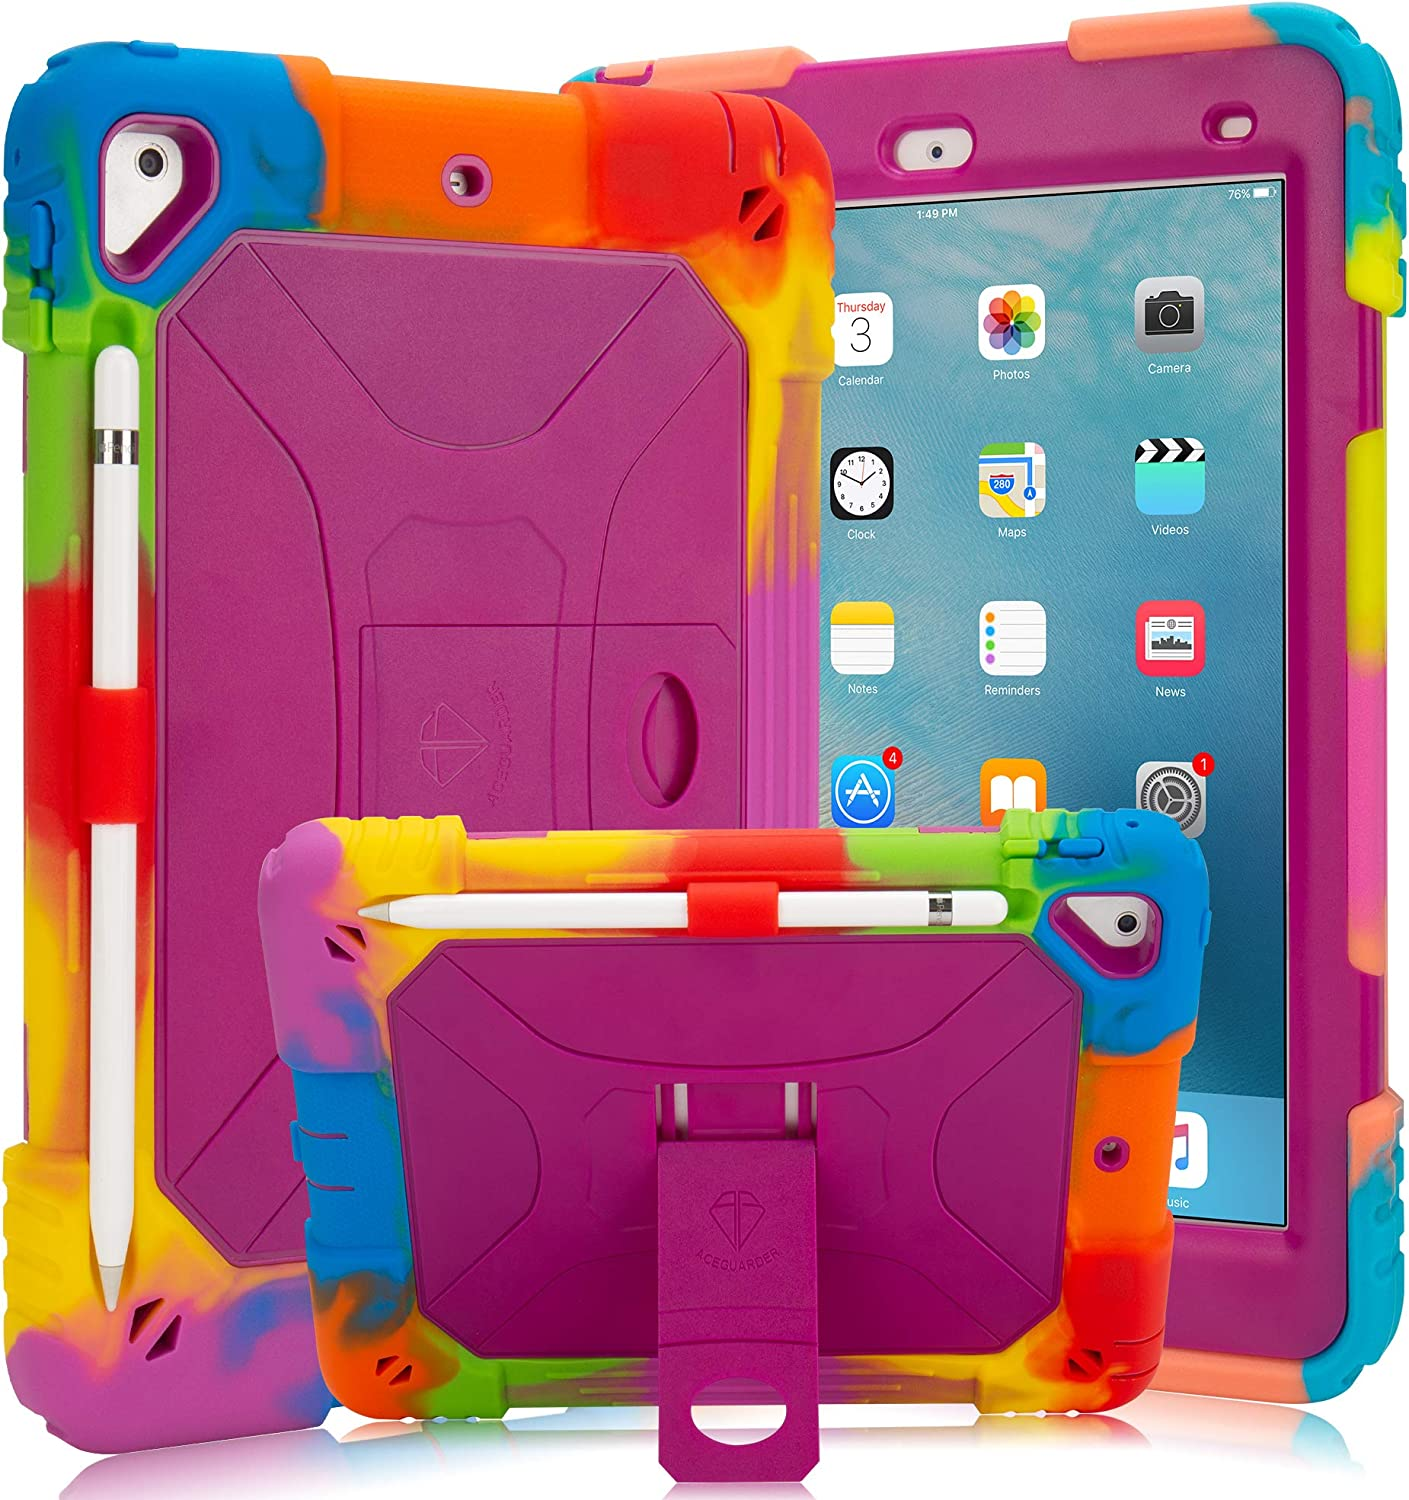 New iPad 9.7 2018/2017 Case iPad 6th/5th Generation Case iPad Air 2 Case with Pencil Holder and Kickstand Heavy Duty Hybrid Shockproof Kids Case Cover for Apple iPad 9.7 inch/Air 2 -Rainbow Purple